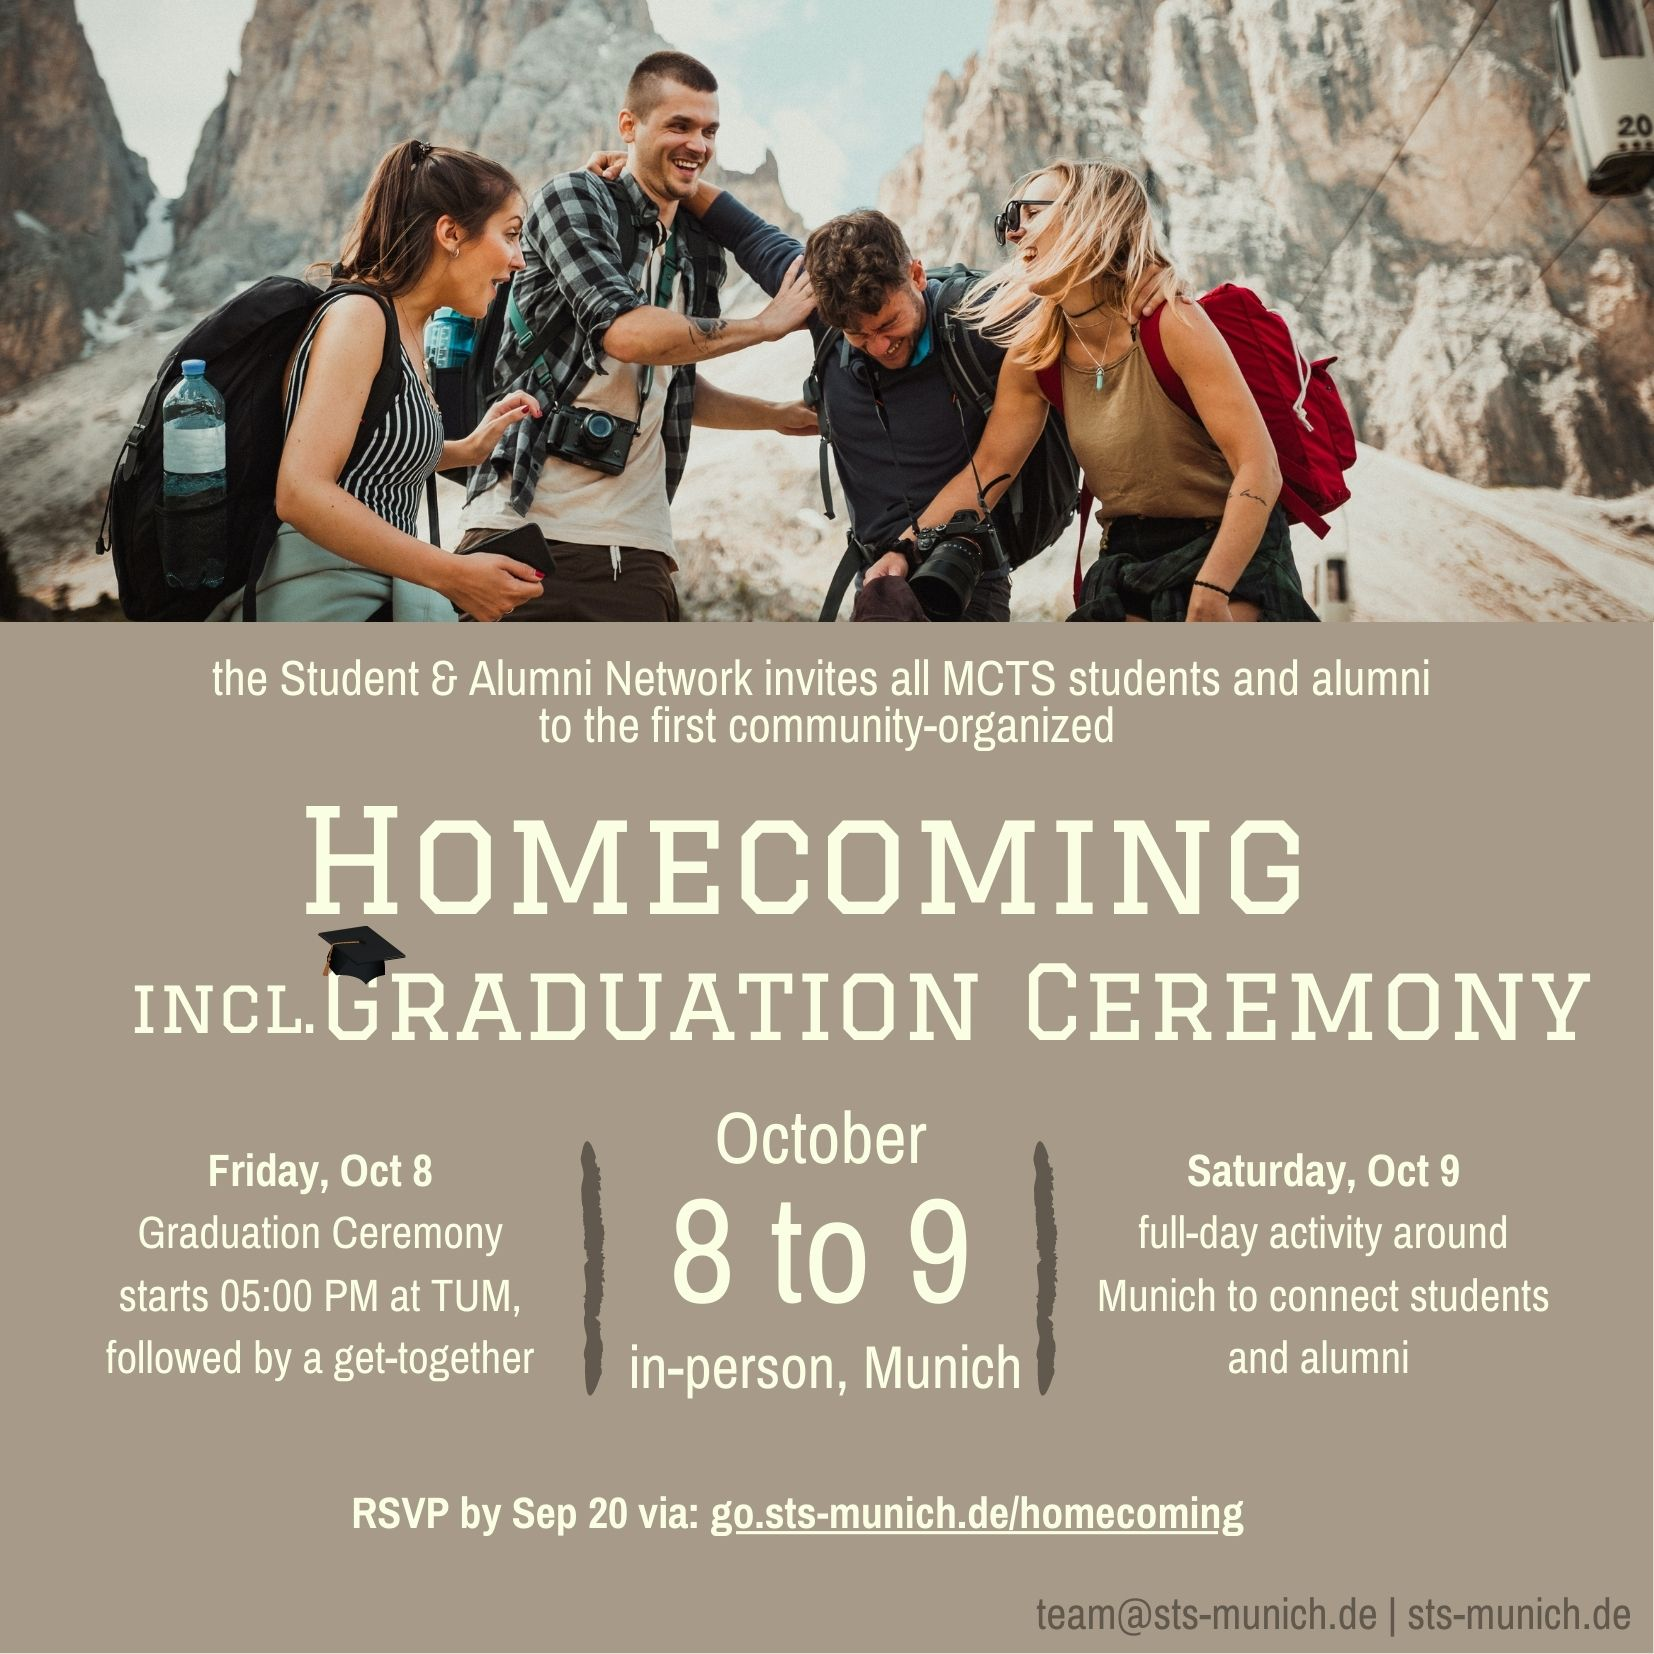 Homecoming on Oct 8-9, 2021 in Munich